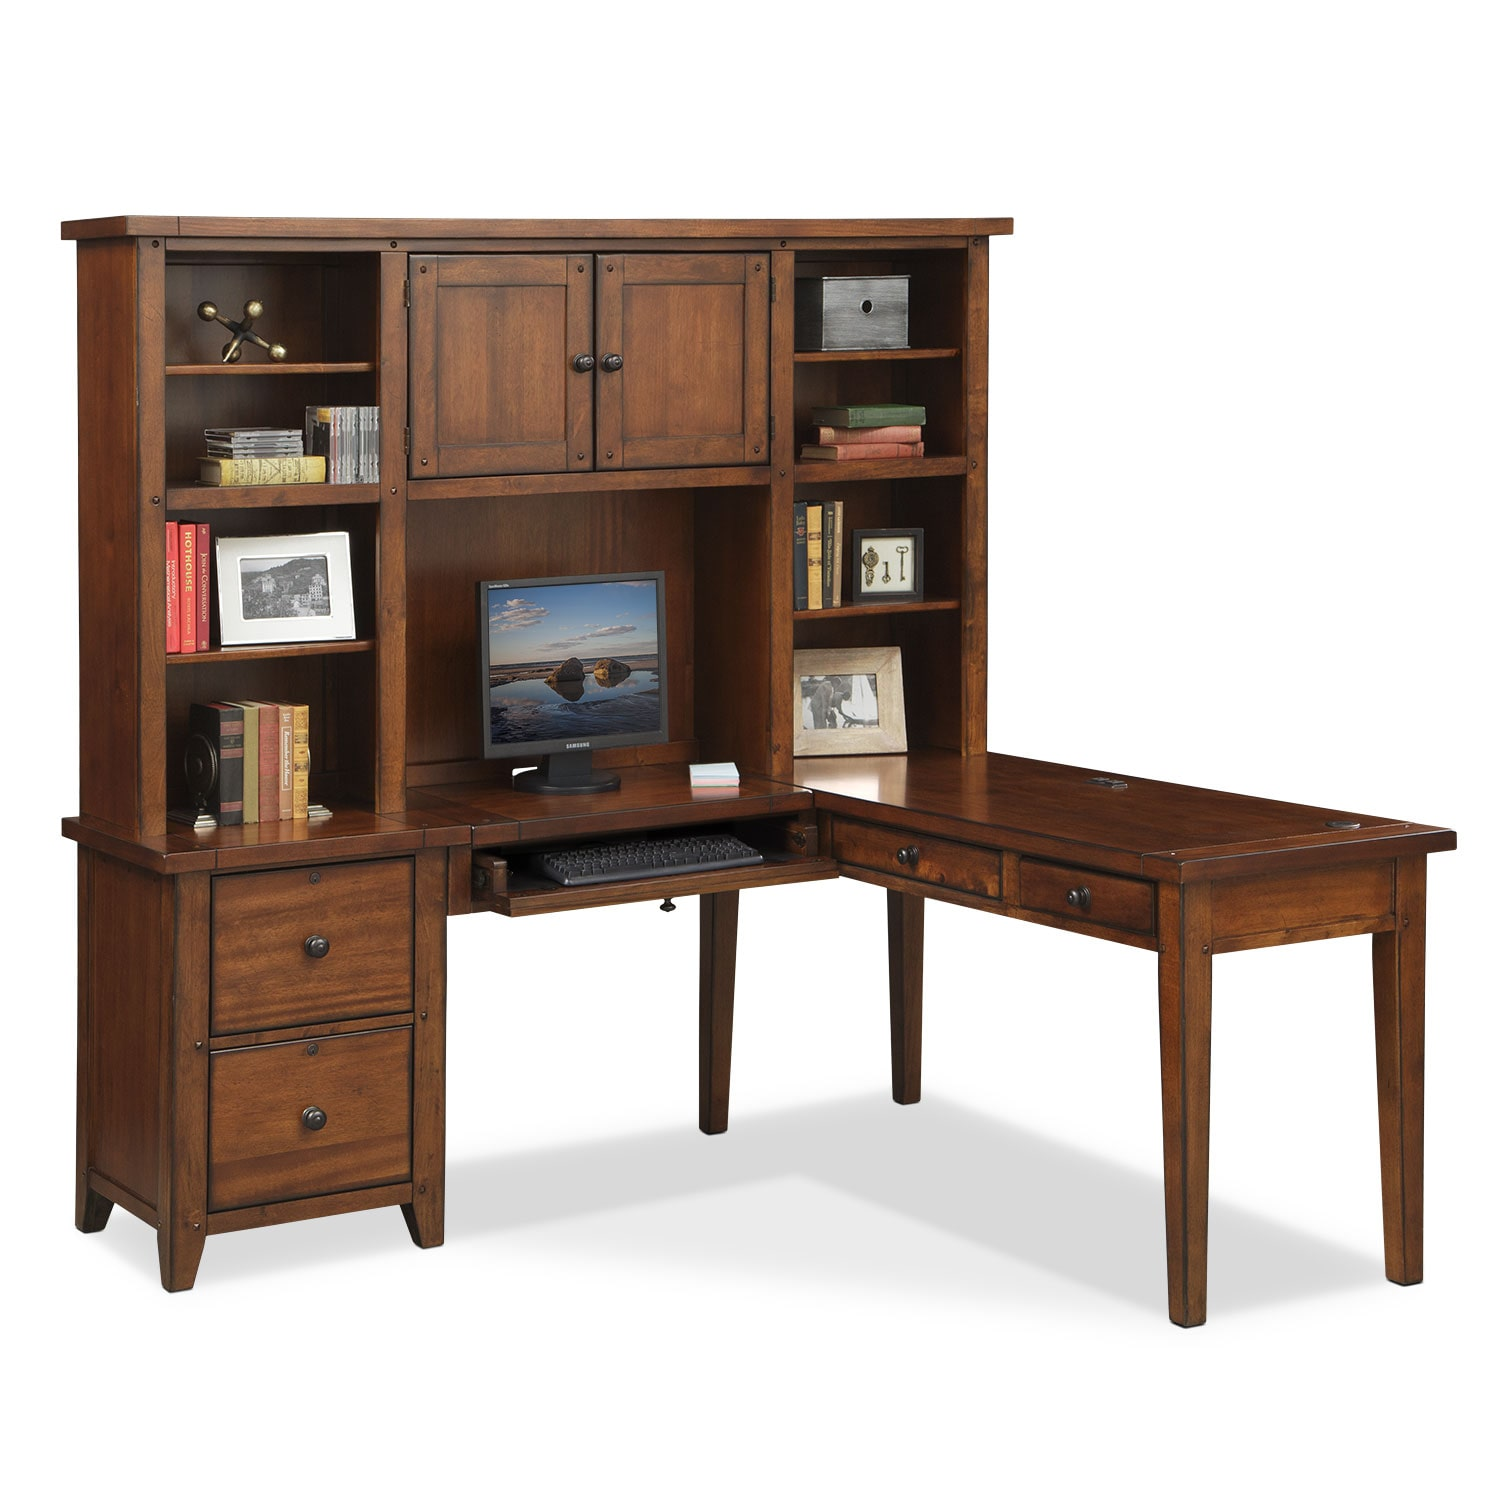 [Morgan L-Shaped Desk with Hutch]